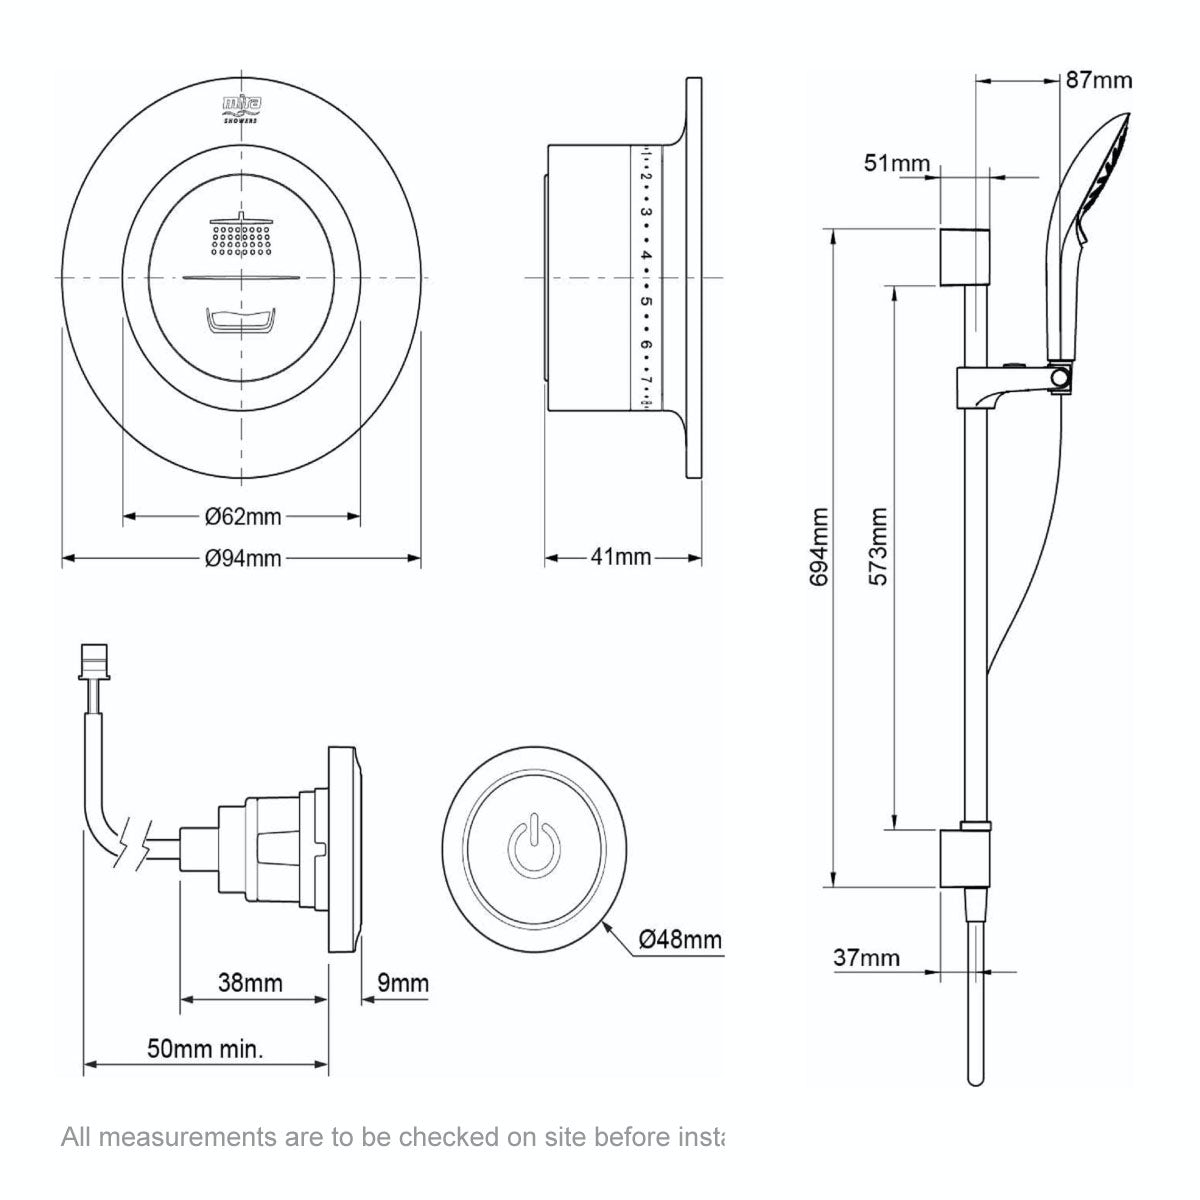 Dimensions for Mira Mode digital shower and bath filler pumped